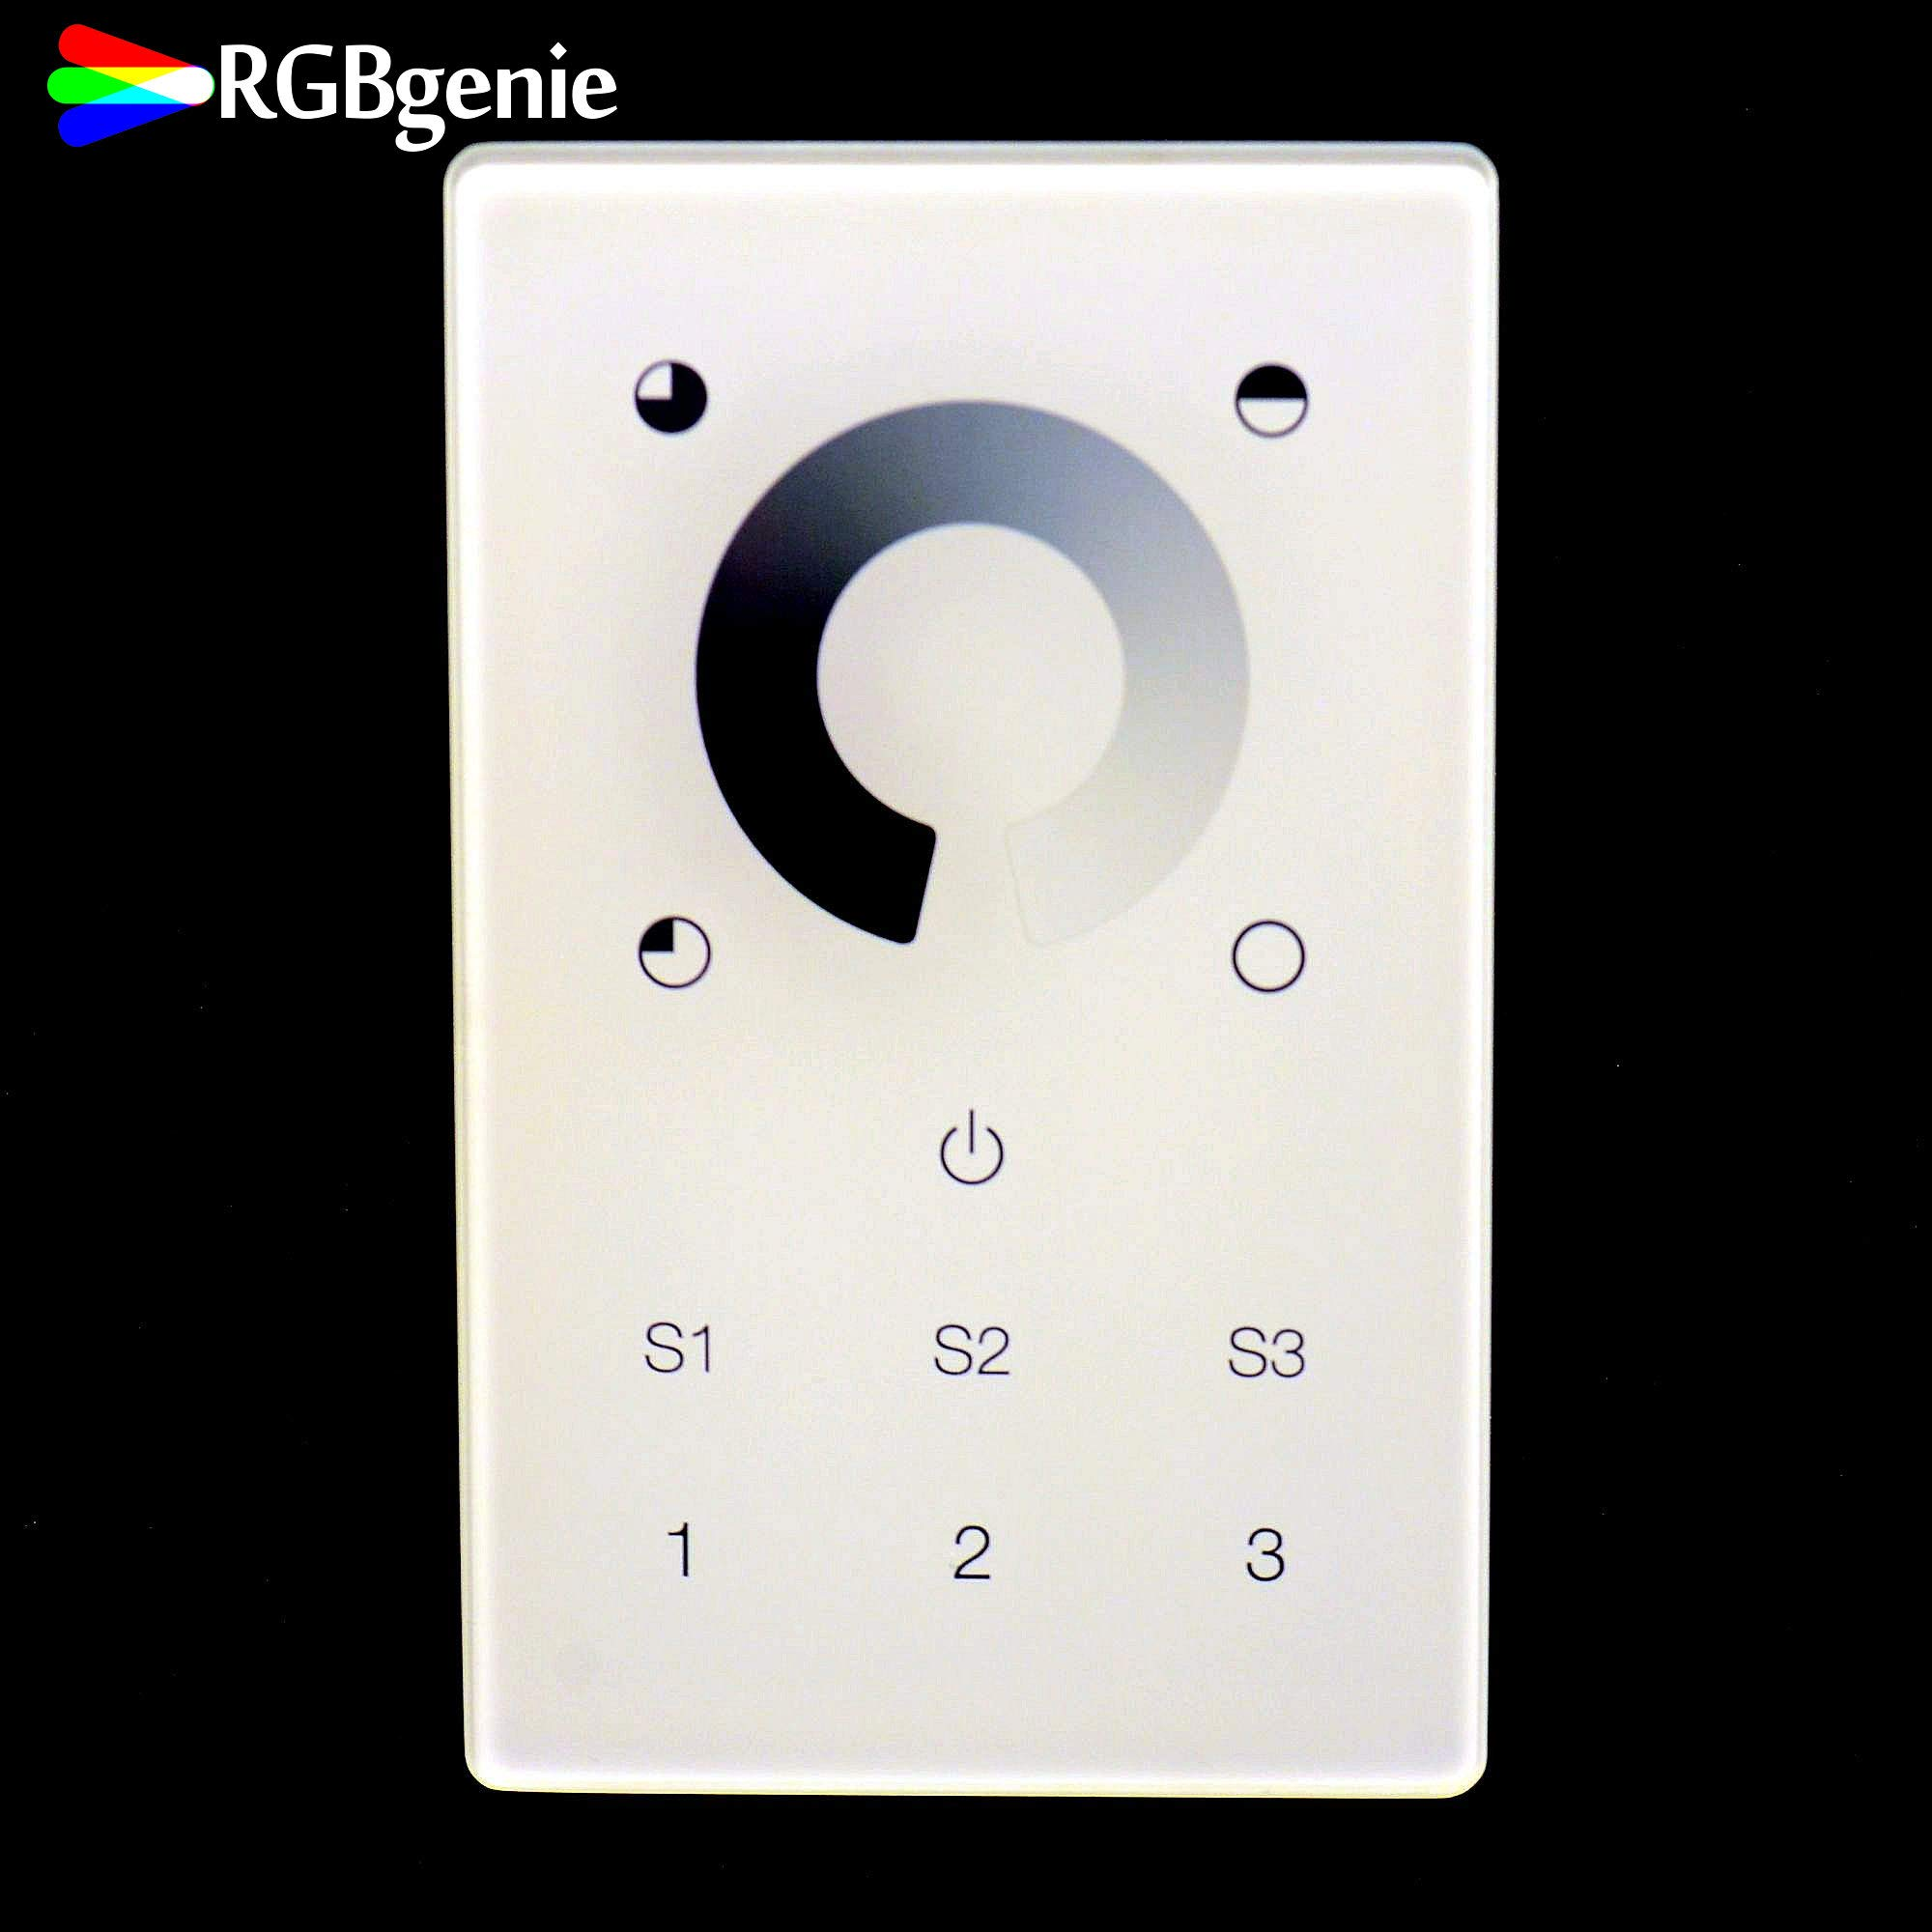 Z-Wave Touch Panel Controller and Dimmer with Built-in Repeater. Can control up to 12 Z-Wave strip lights or bulbs. Single Color, 3 Zone, 3 Scene recall, 110v input. RGBgenie ZW-3001 (white) by RGBgenie (Image #4)